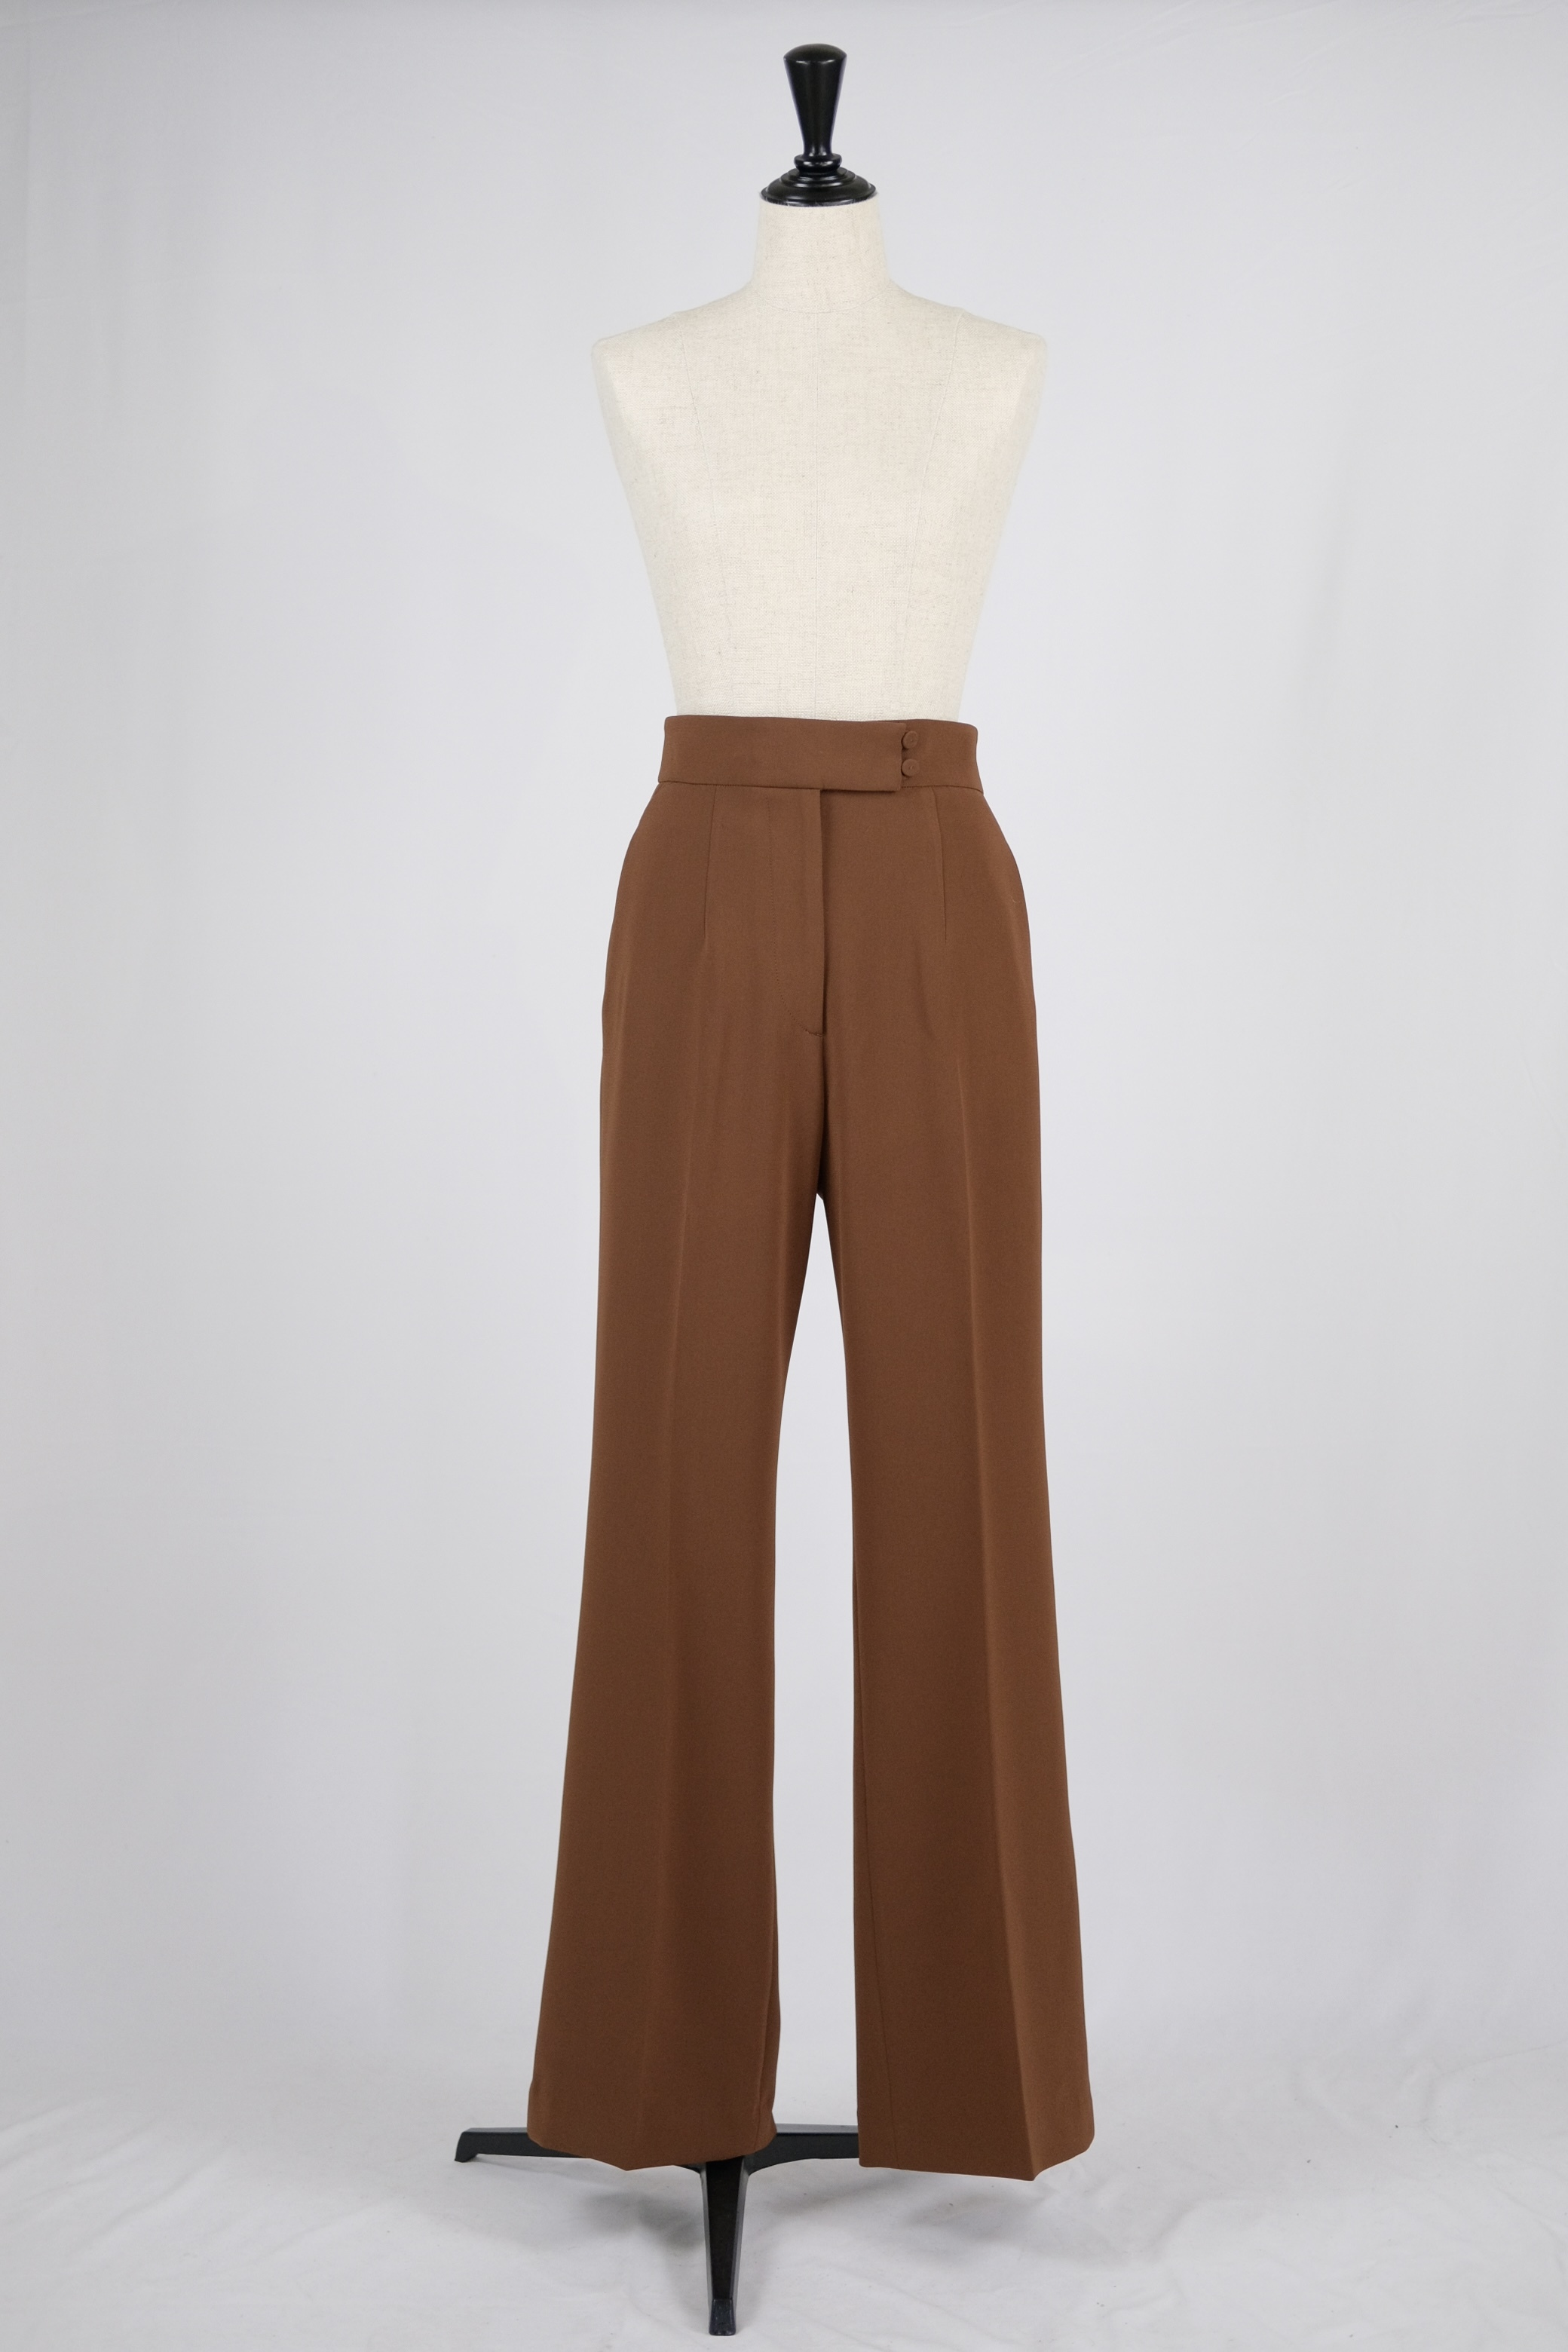 【Mame Kurogouchi】High Waisted Center Creased Suit Trousers - brown